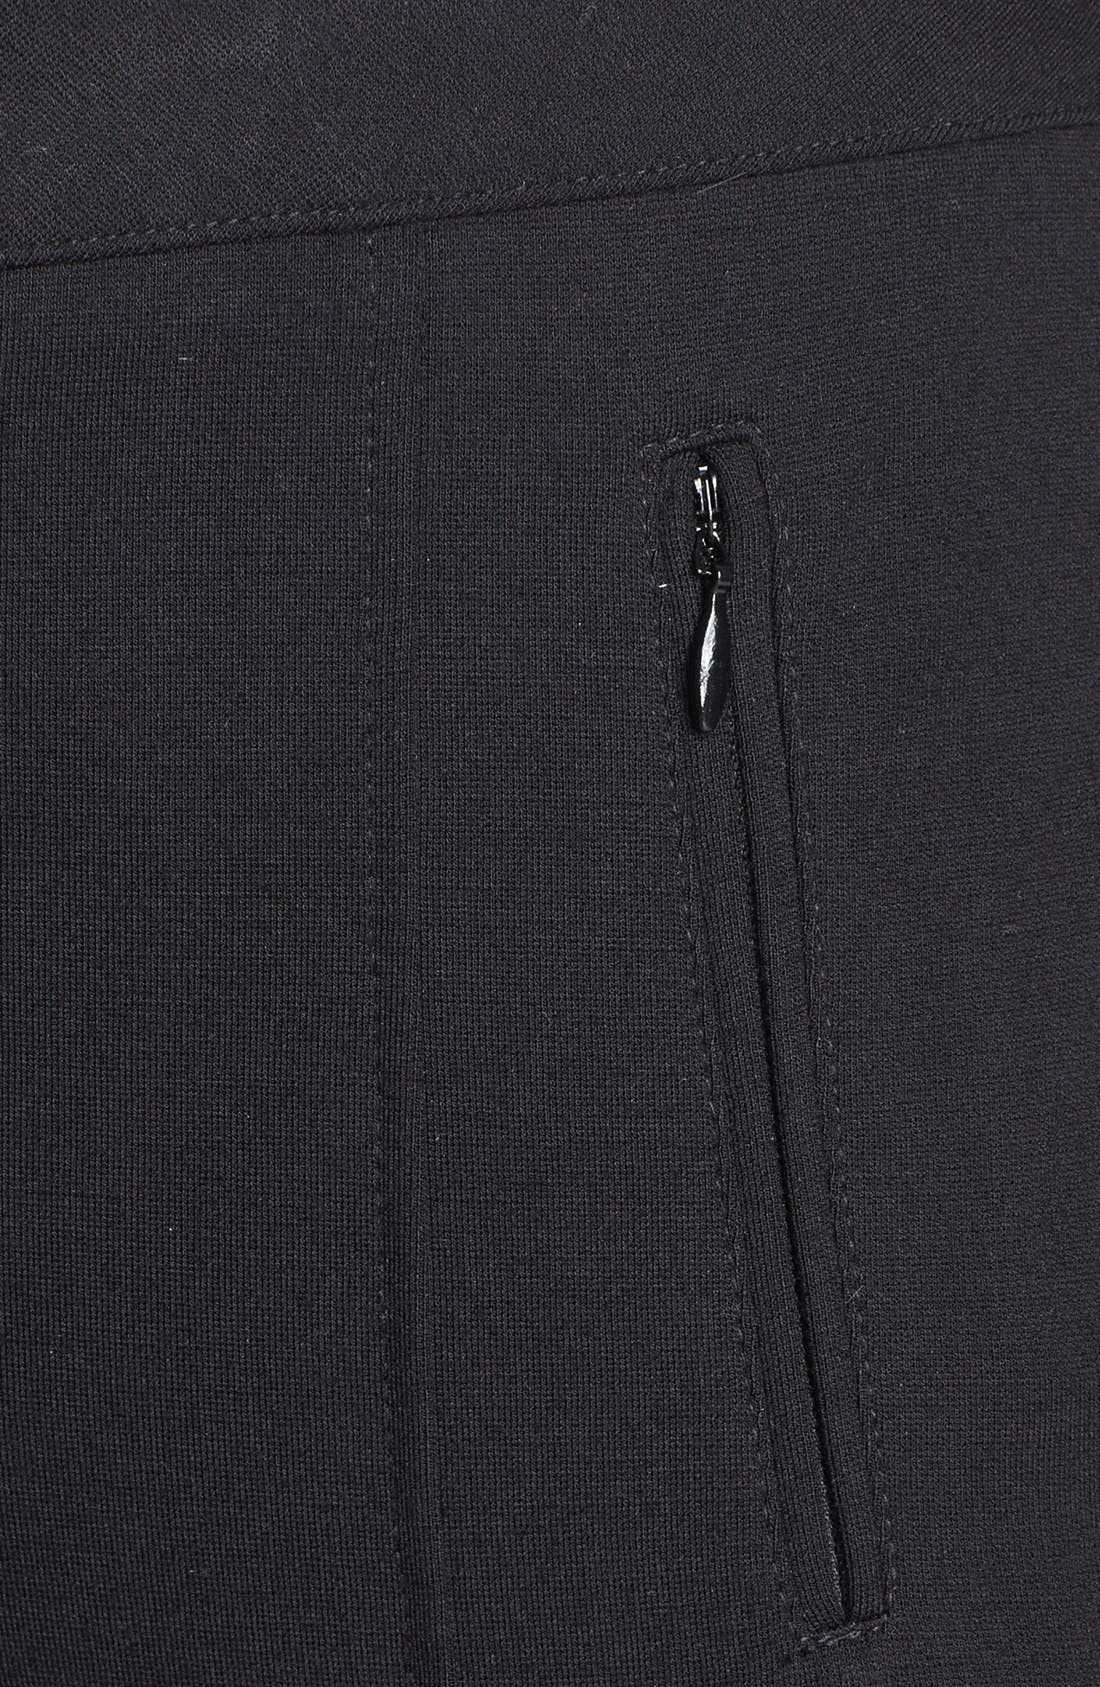 Alternate Image 3  - NYDJ 'Ski' Zip Pocket Ponte Knit Pants (Petite)